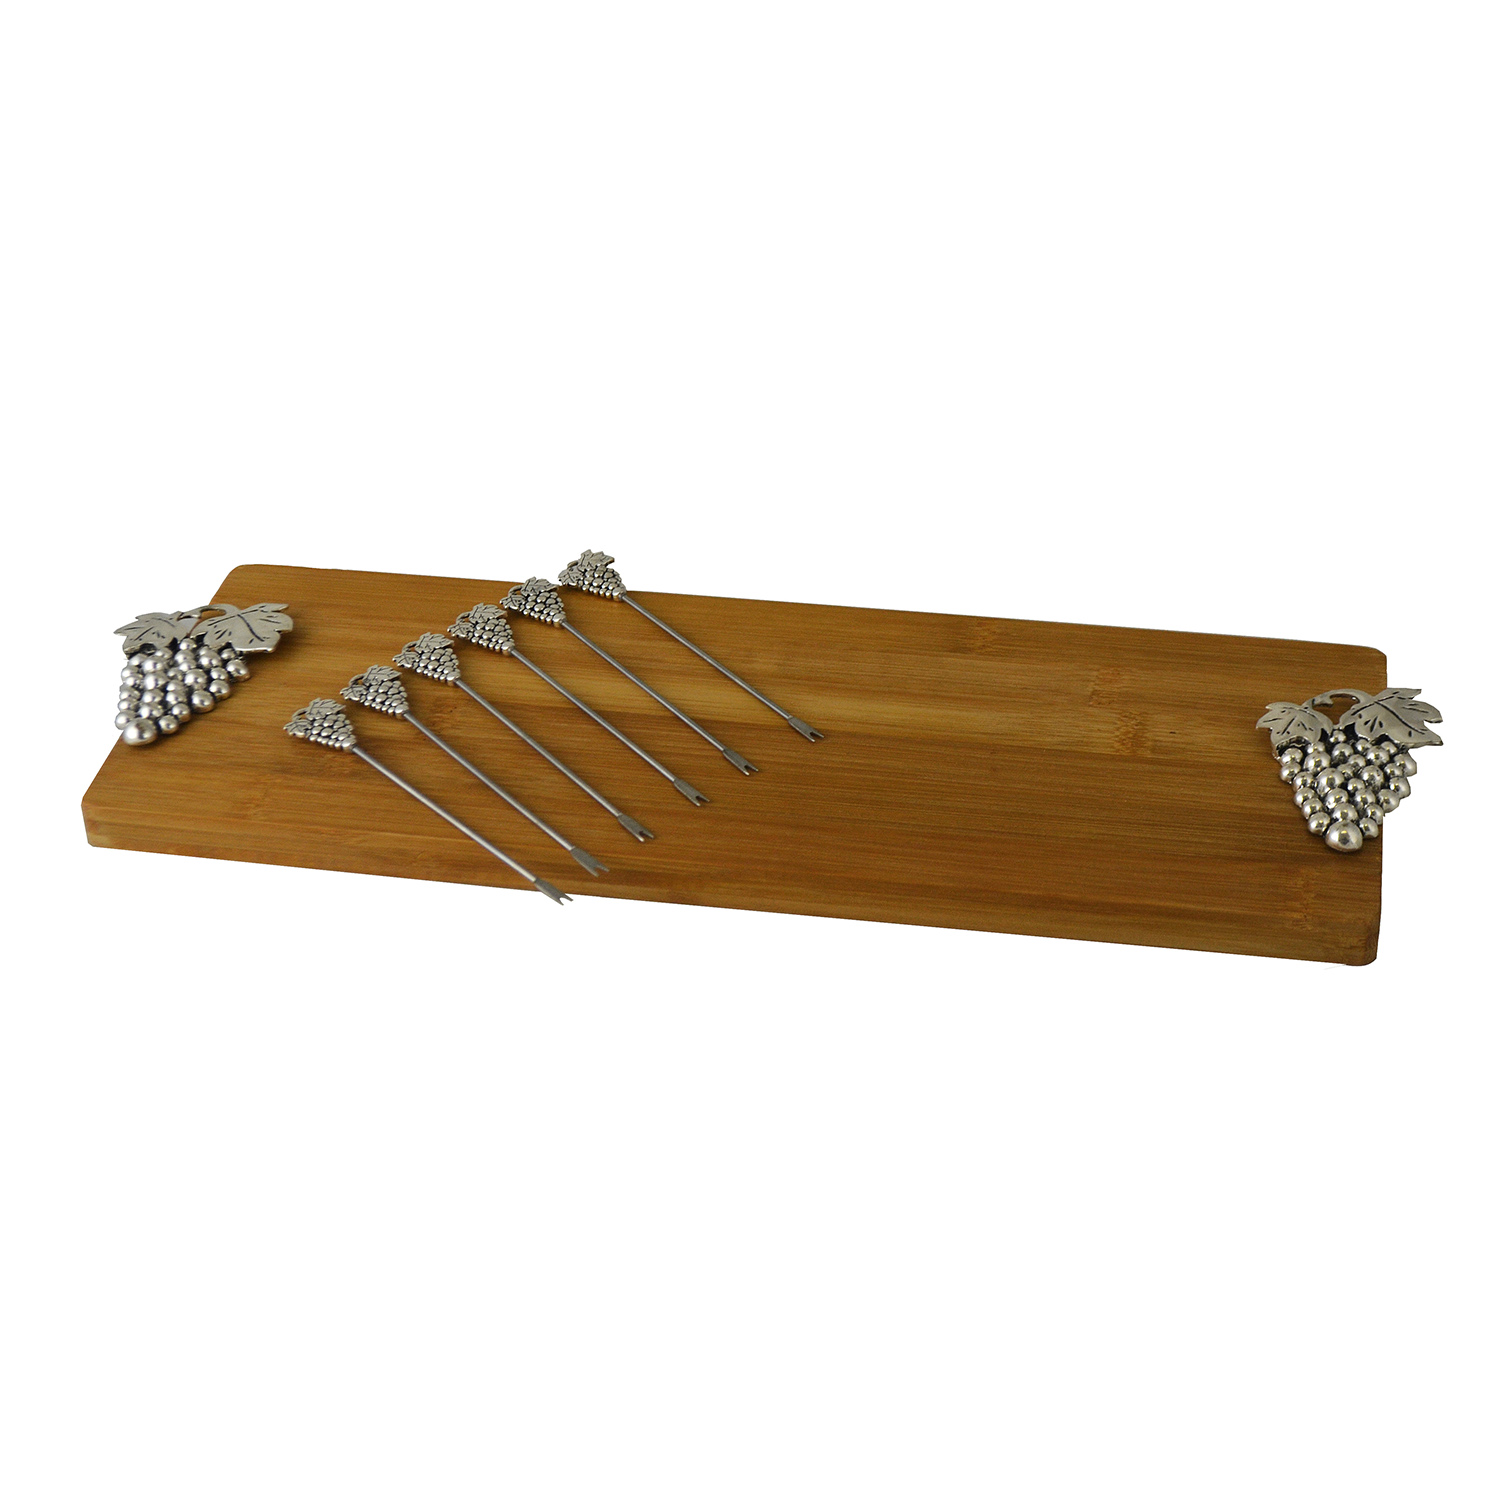 CHEESE BOARD W/ 6 PICKS, SILVER GRAPES